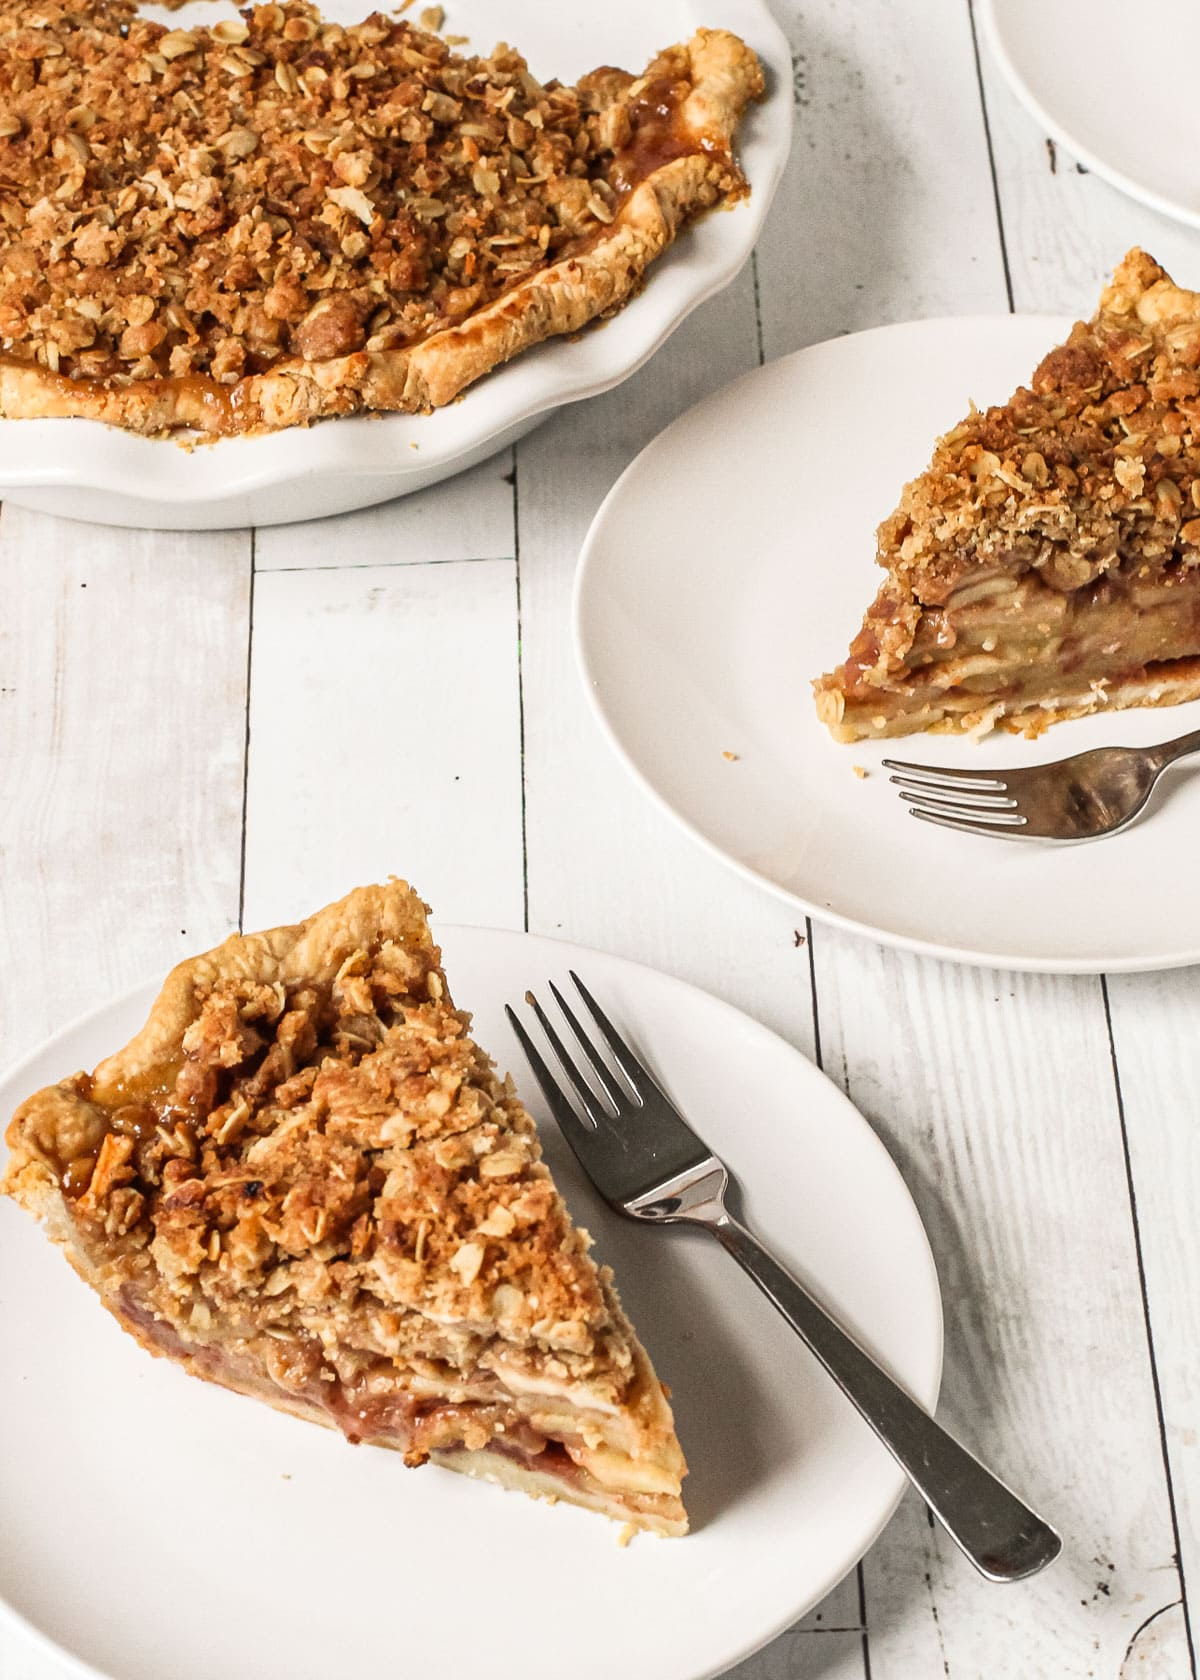 Apple crumble pie slices on a plate.